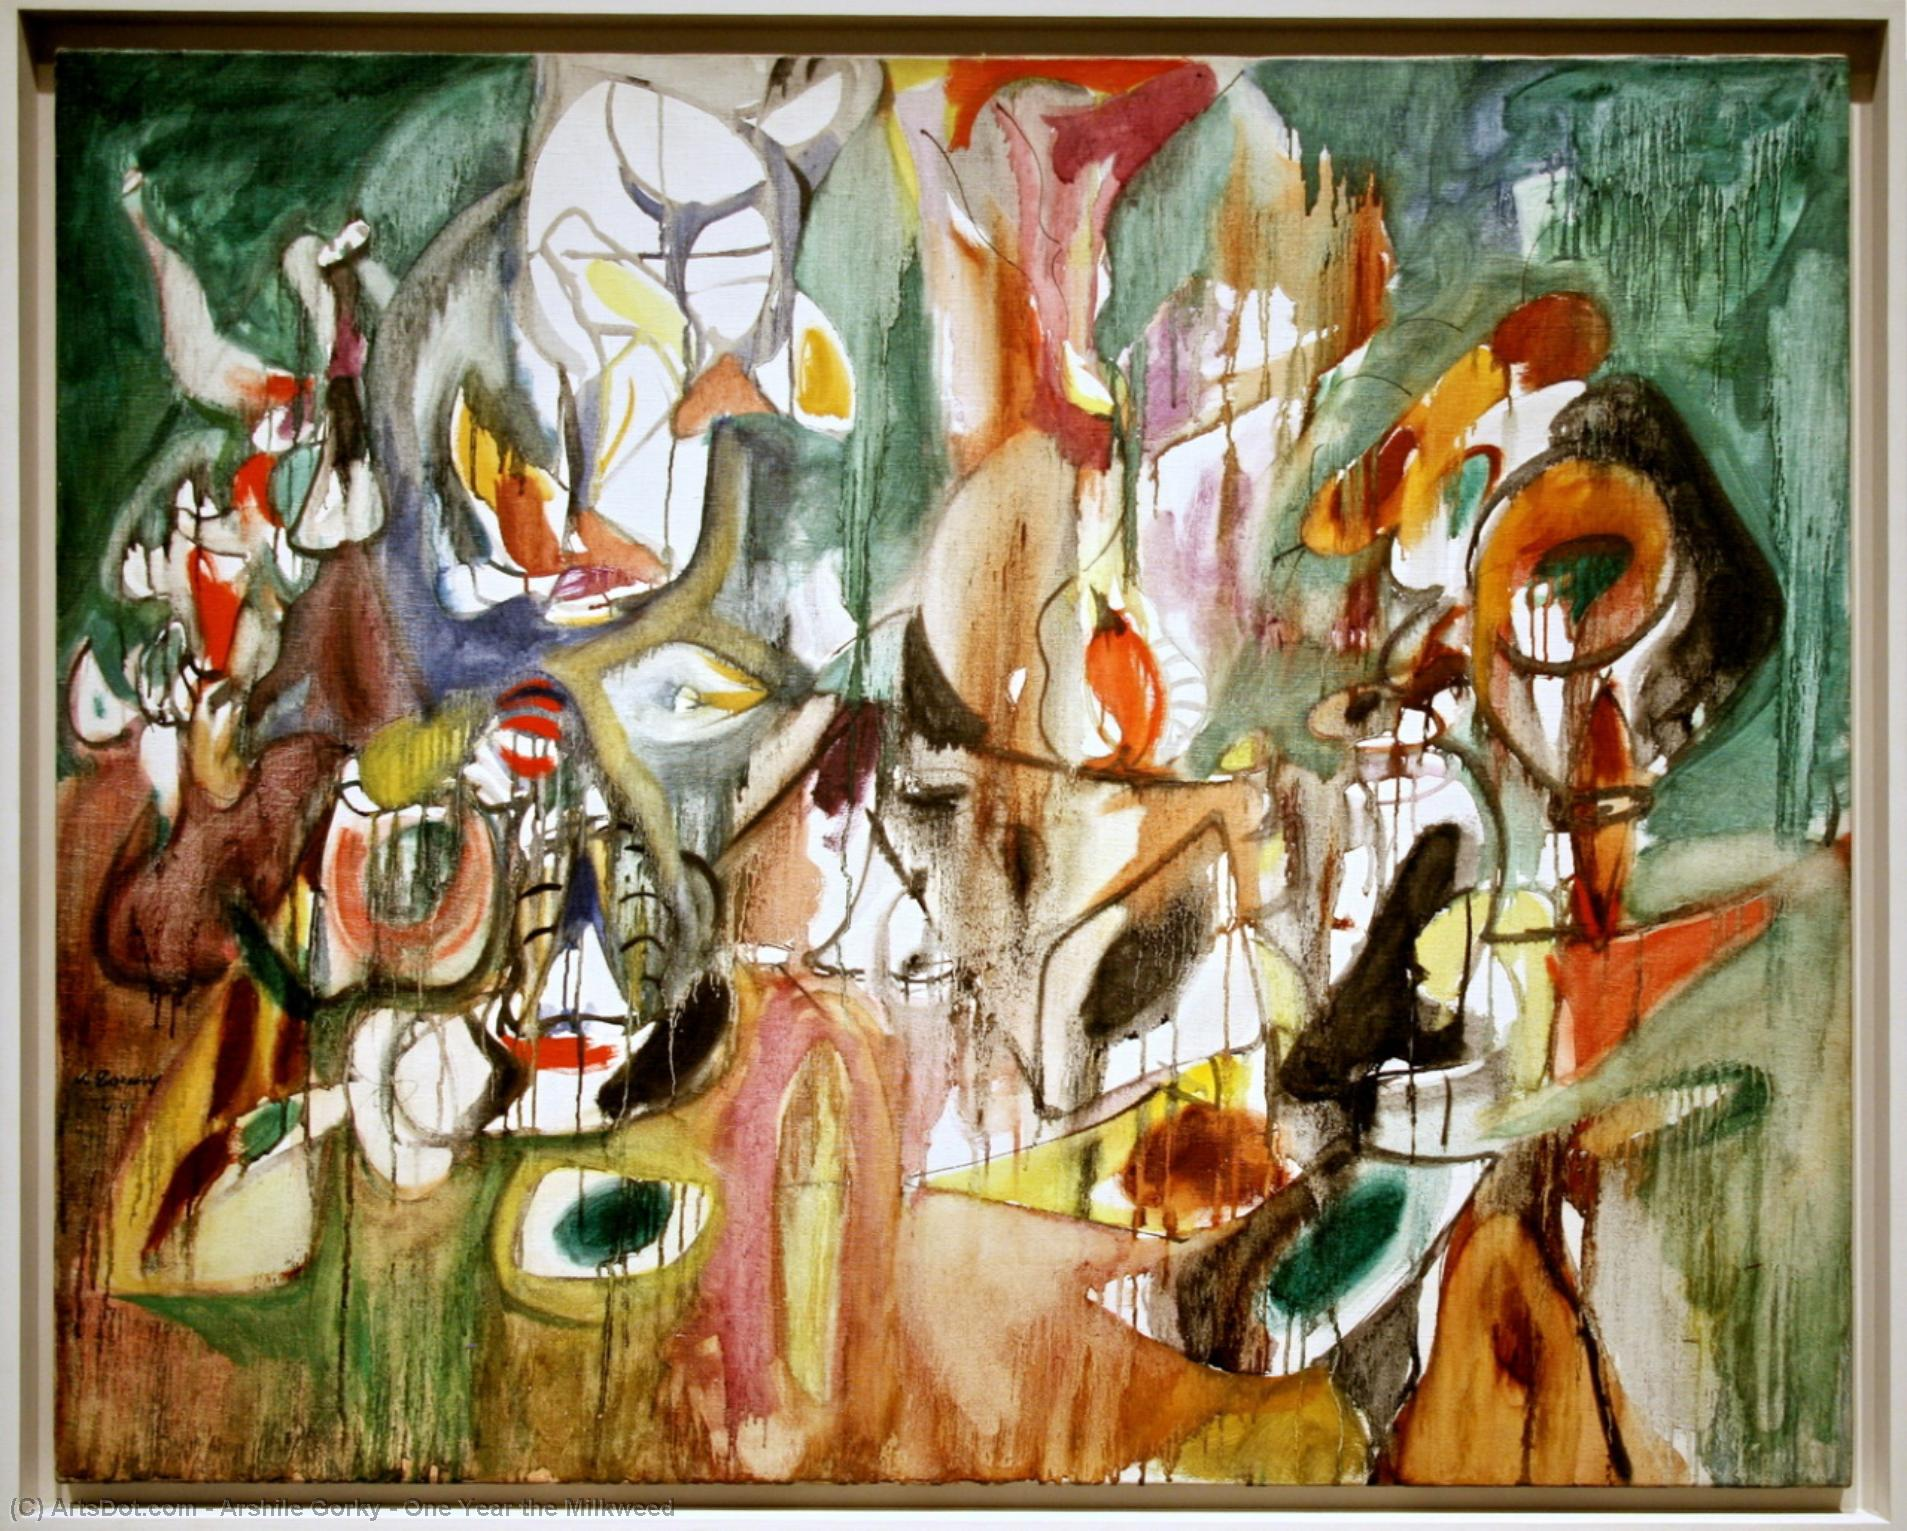 Wikioo.org - The Encyclopedia of Fine Arts - Painting, Artwork by Arshile Gorky - One Year the Milkweed